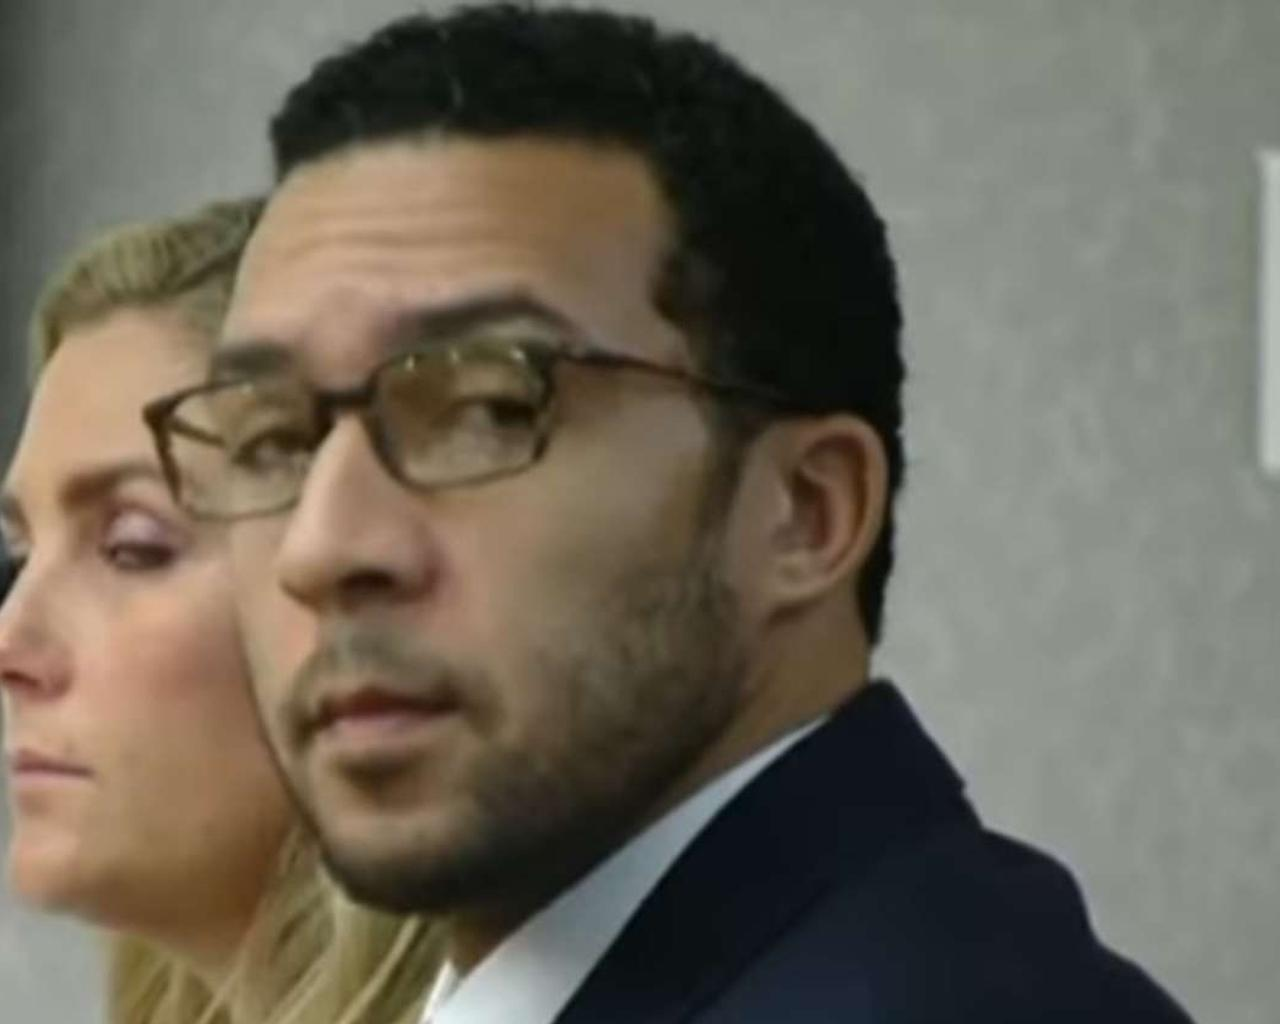 Kellen Winslow Jr. Allegedly Raped A Homeless Woman And Two Others — Can He Beat The Case?